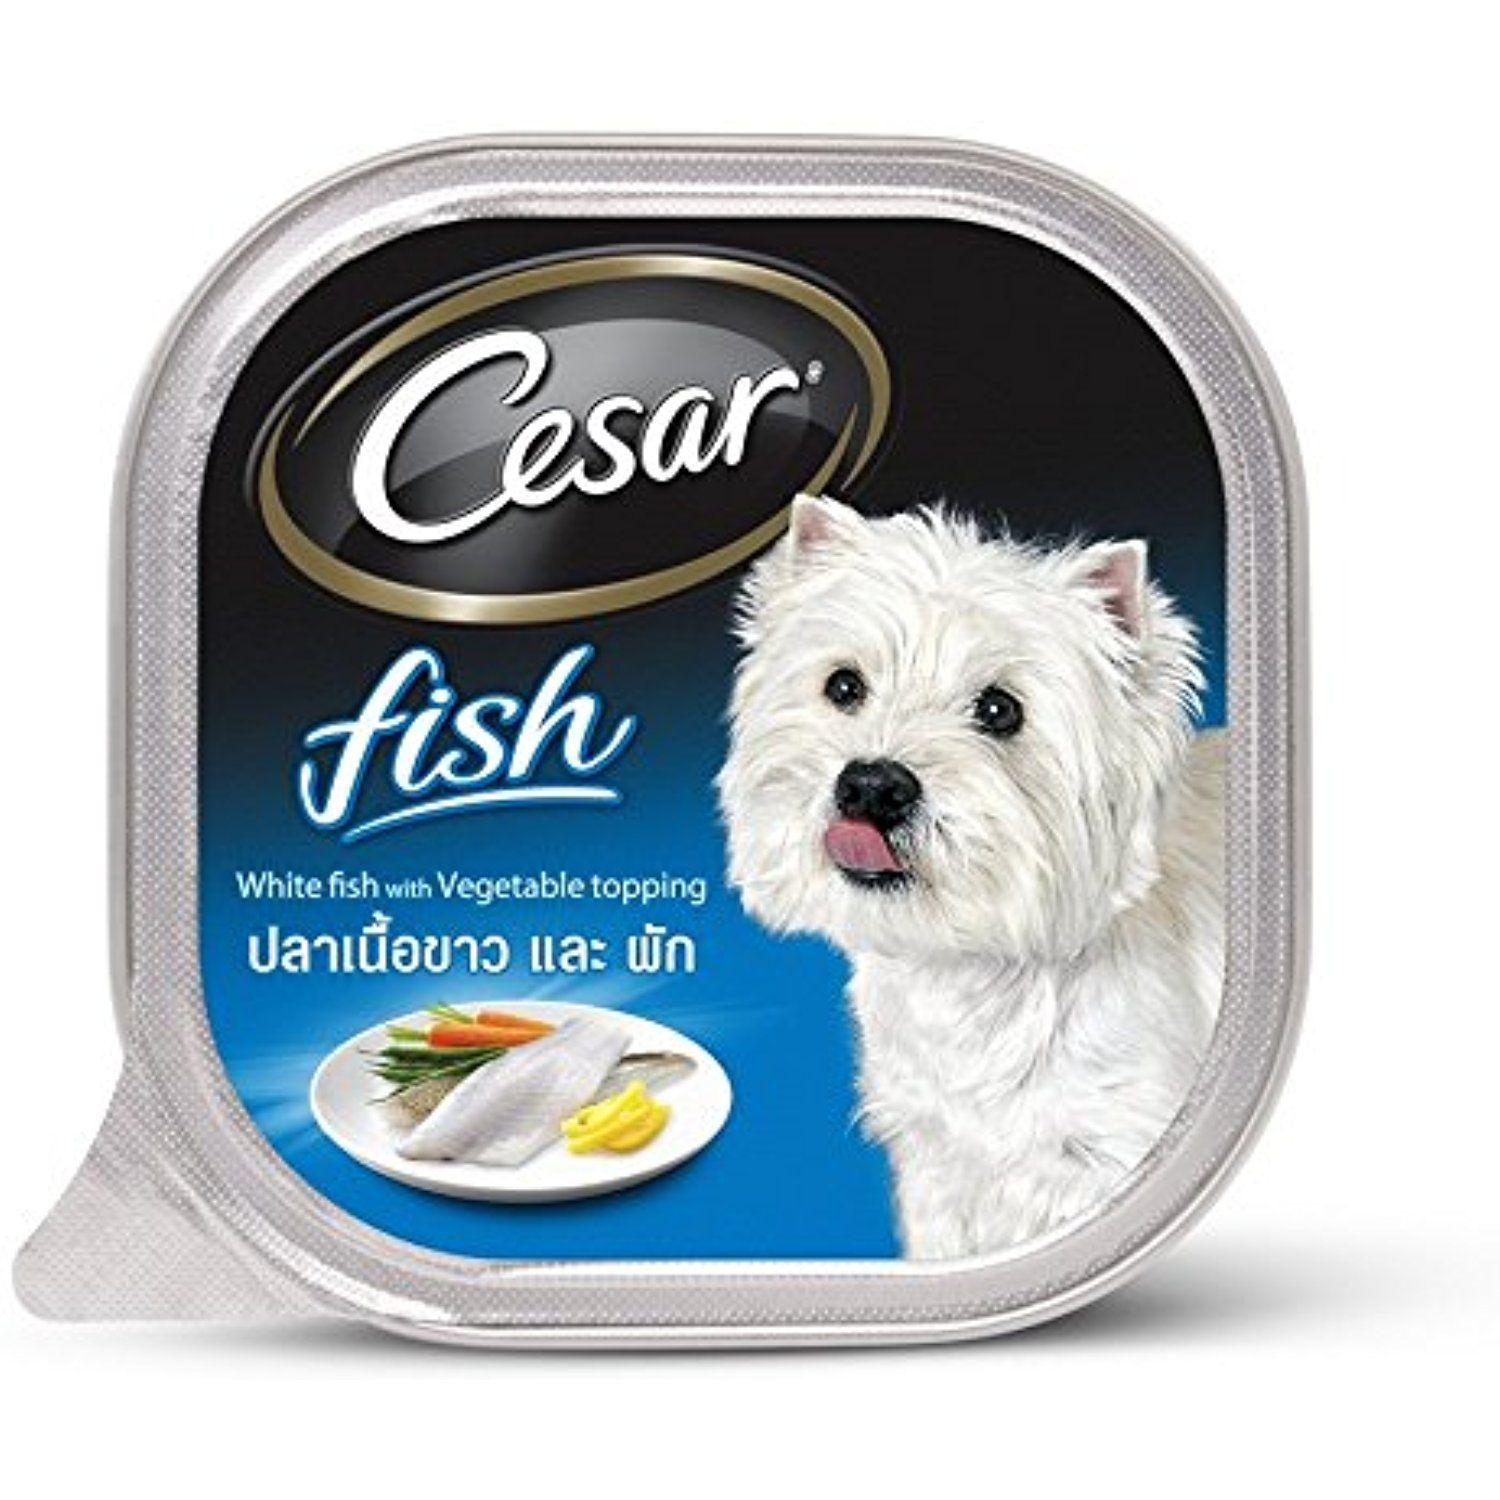 Dog Food Cesar White Fish & Vegetable. You can check